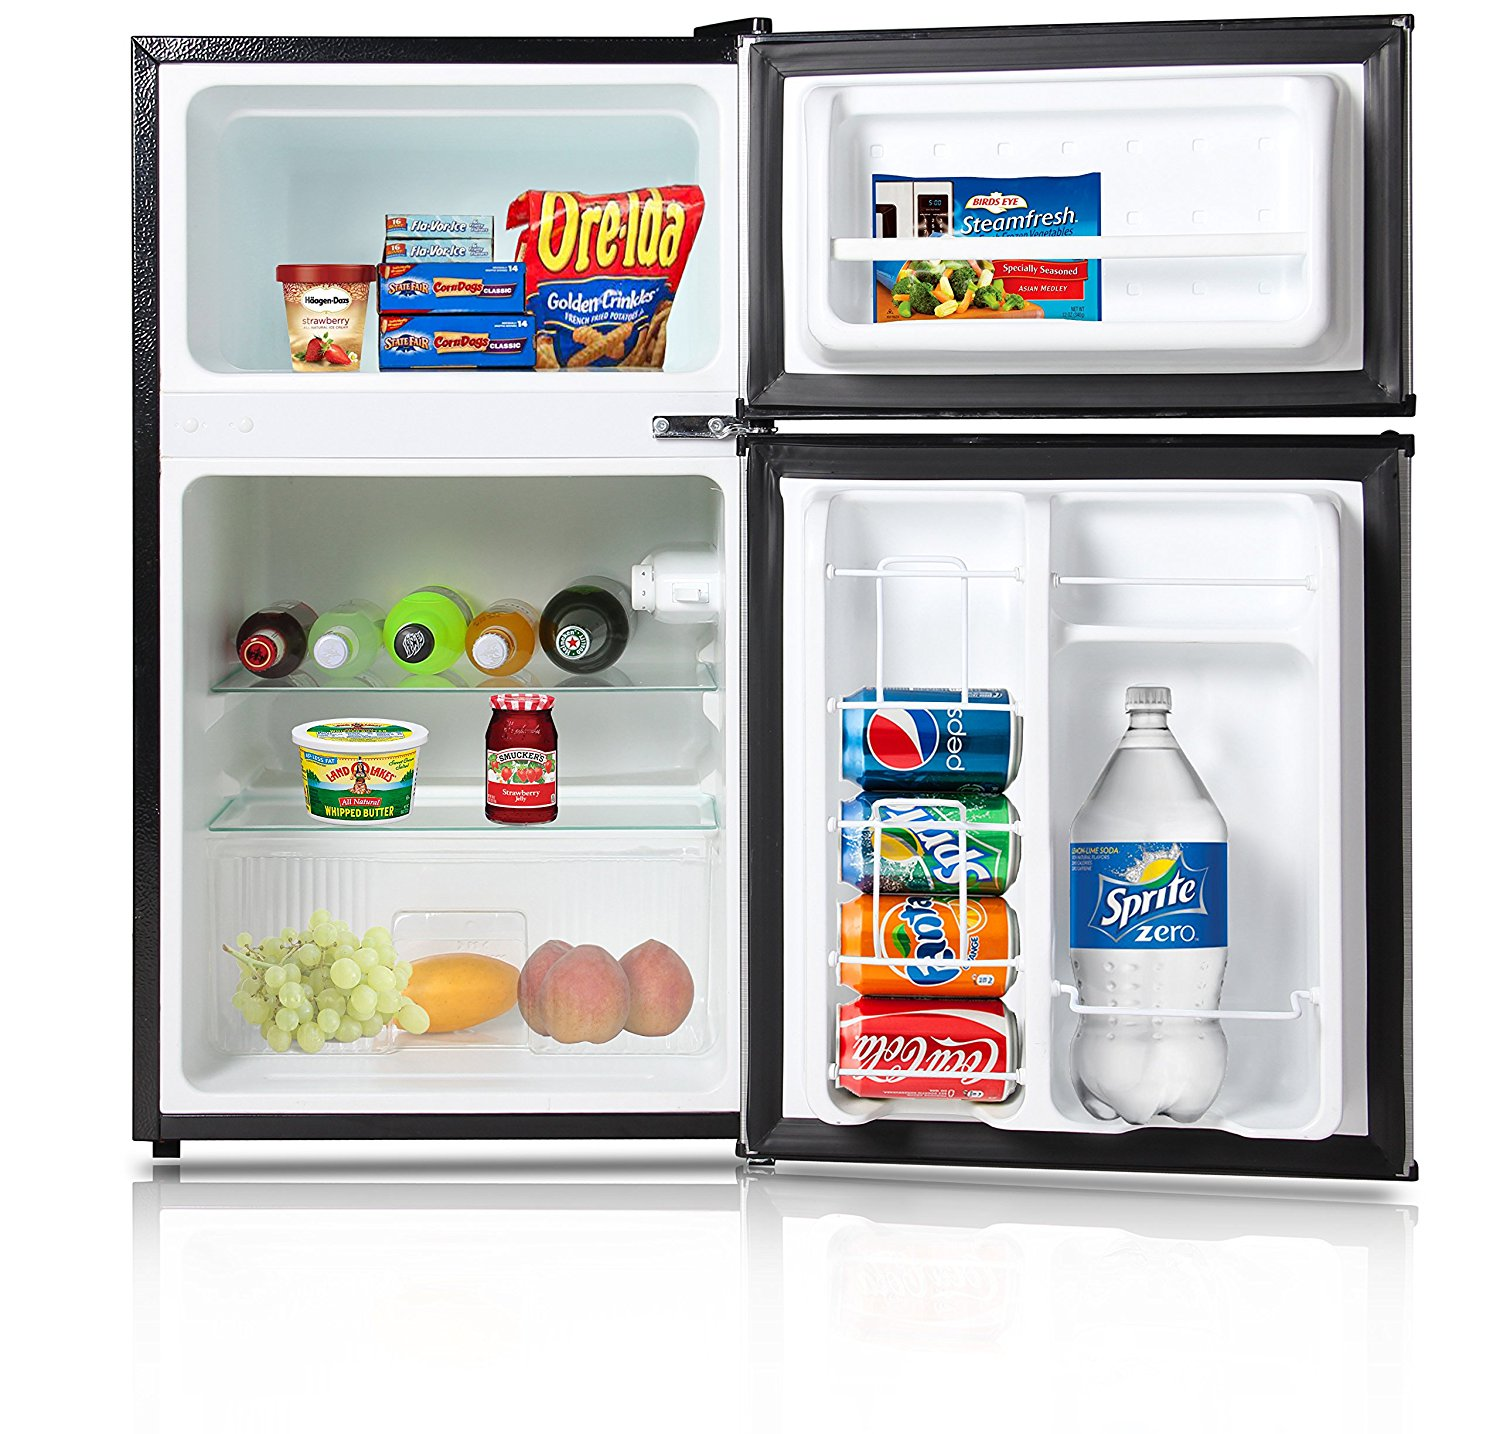 small fridge freezer with ice maker french door bottom undercounter Avalon by Keyton Refrigerator and Freezer with Reversible Doors